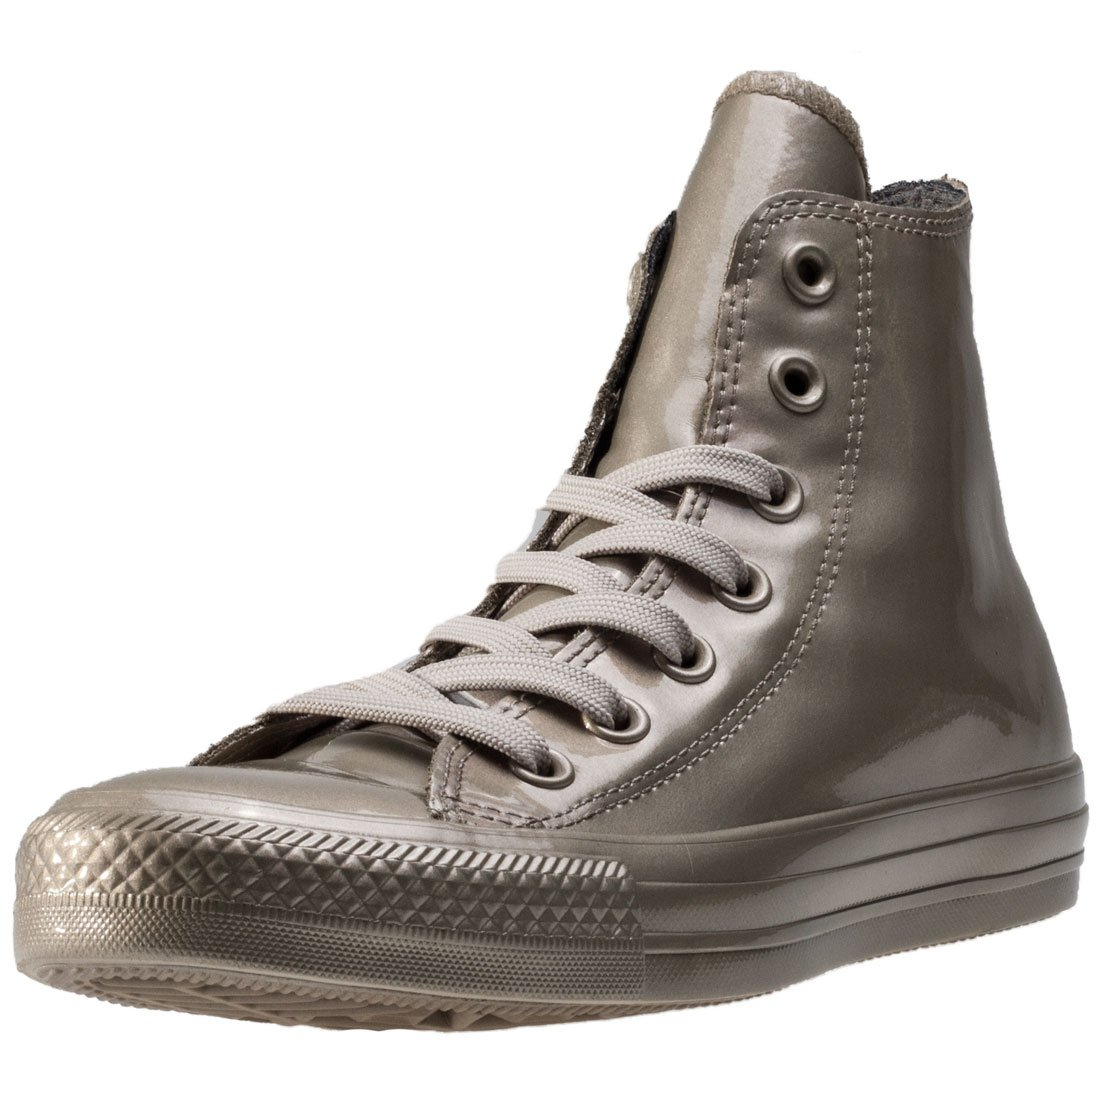 Converse AS Hi Can charcoal 1J793 Unisex-Erwachsene Sneaker  37.5 EU|Gold